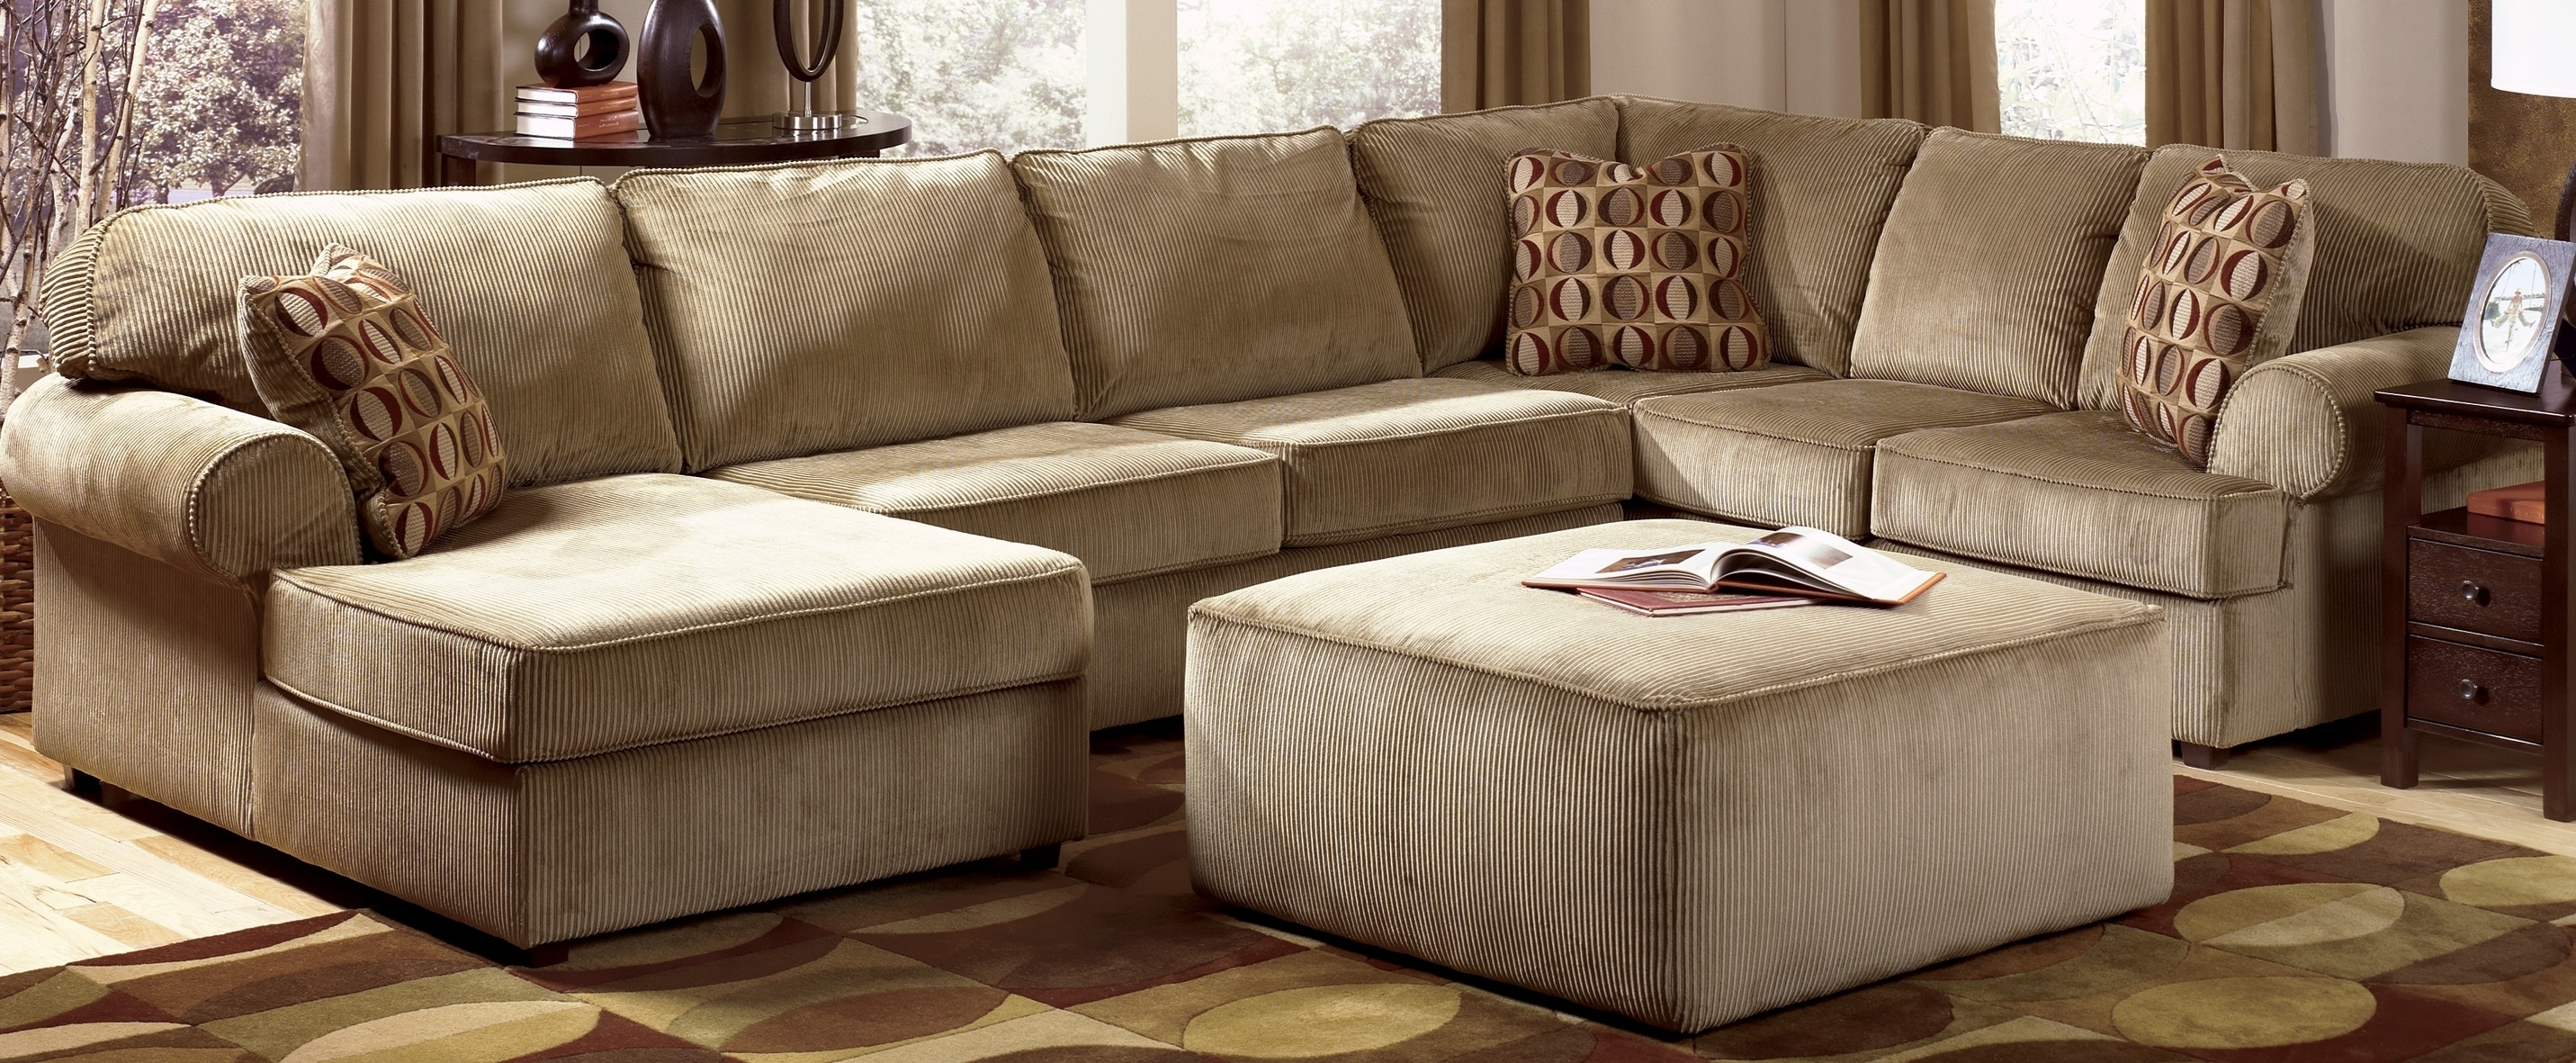 Inexpensive Sectional Sofas For Small Spaces For Favorite Stylish Inexpensive Sectional Sofas For Small Spaces (View 10 of 15)